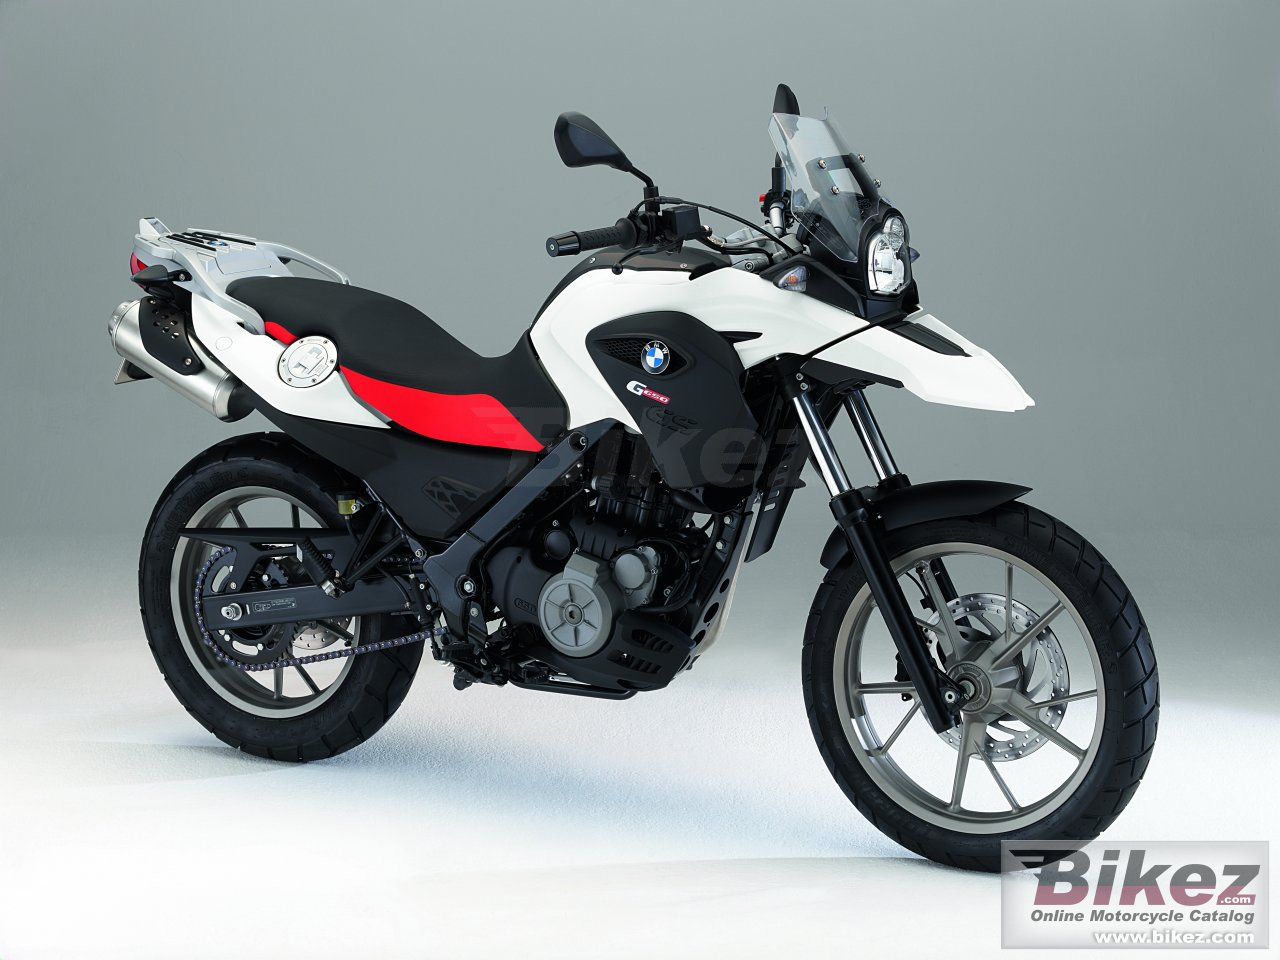 Big BMW g 650 gs picture and wallpaper from Bikez.com